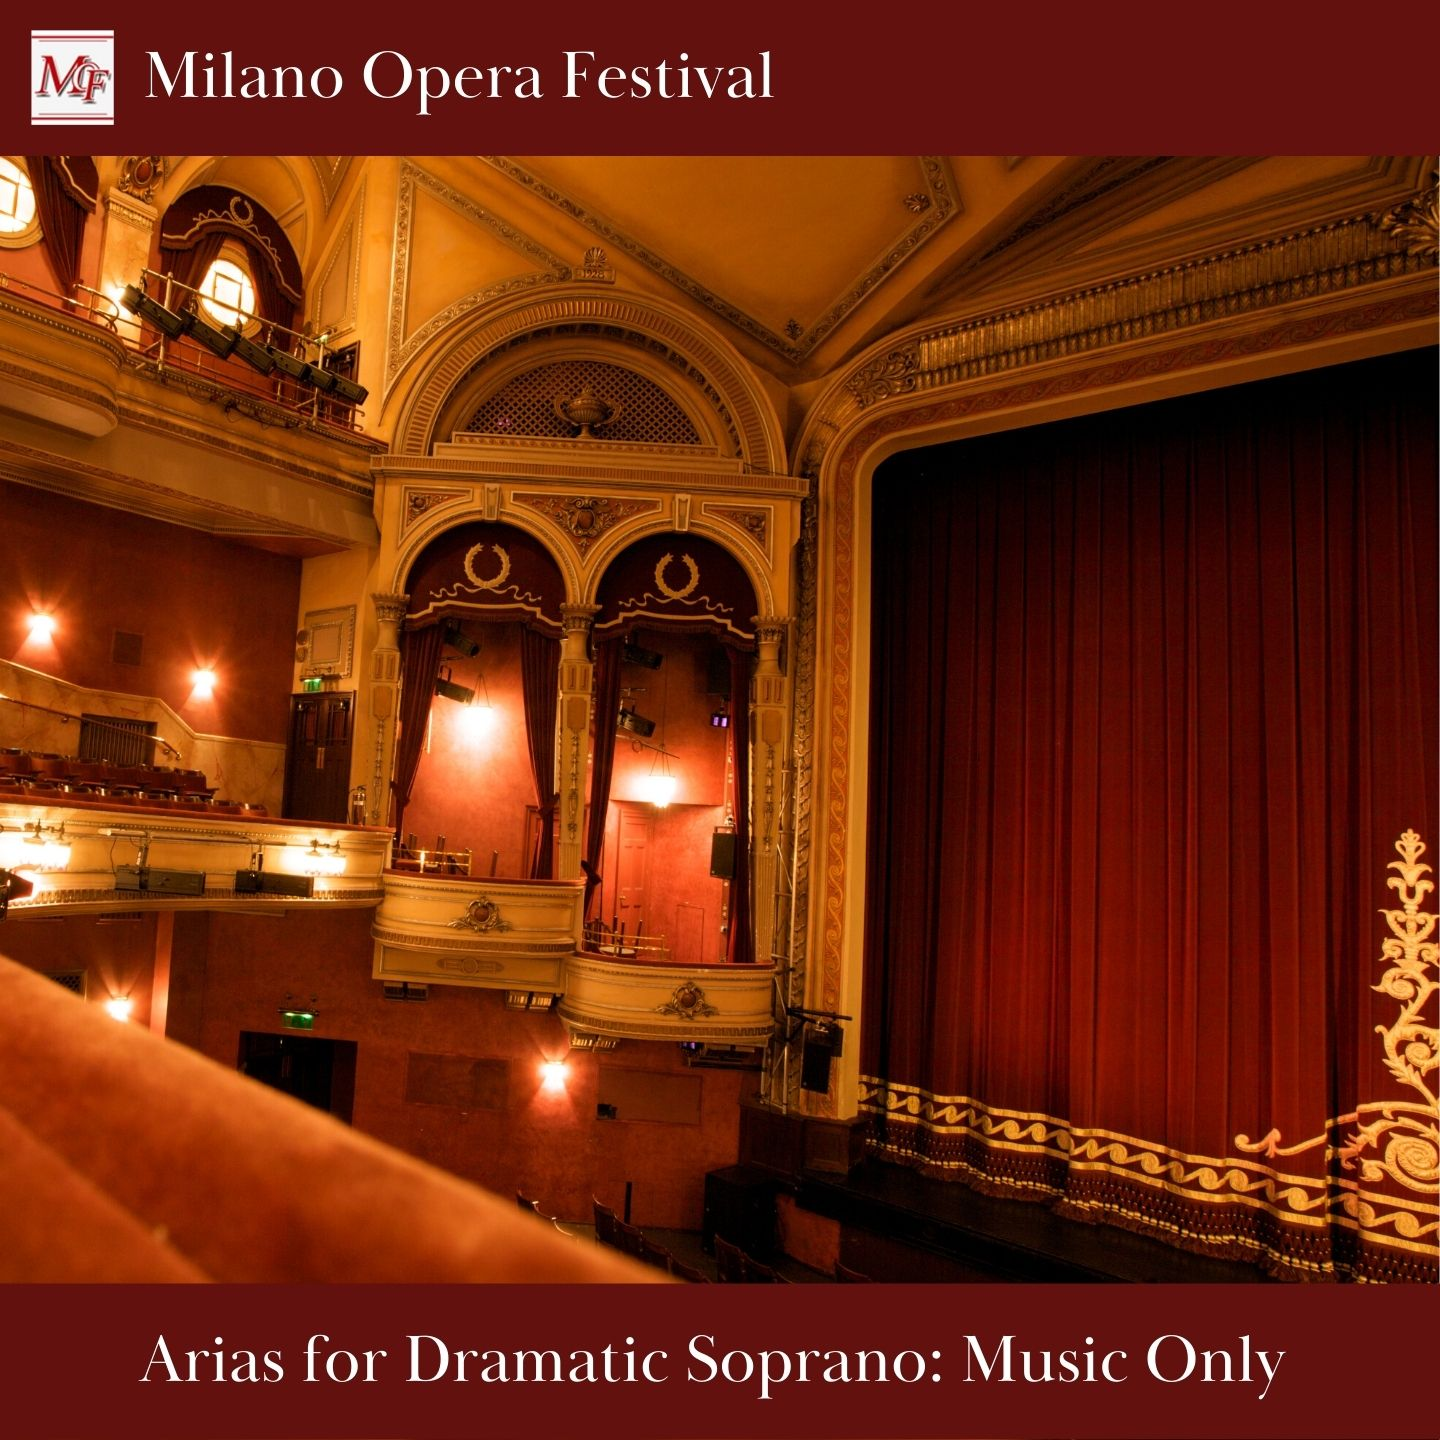 Arias for Dramatic Soprano - Only Music